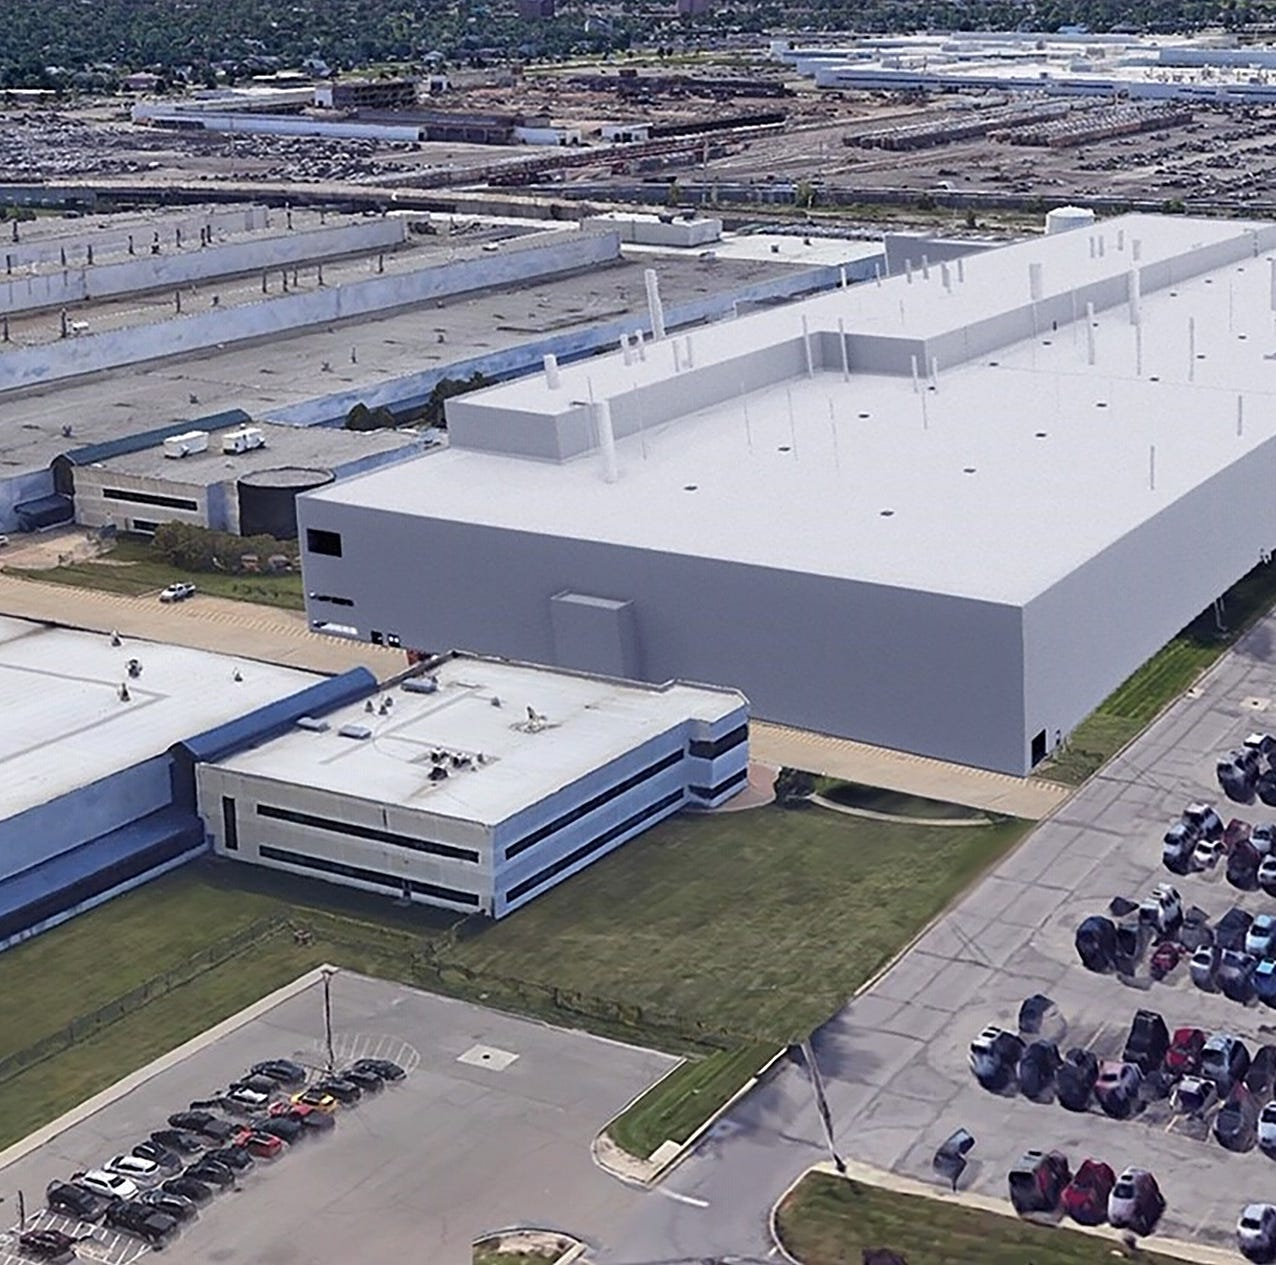 FCA's Jeep assembly plant is coming to Detroit — but city may have paid too much